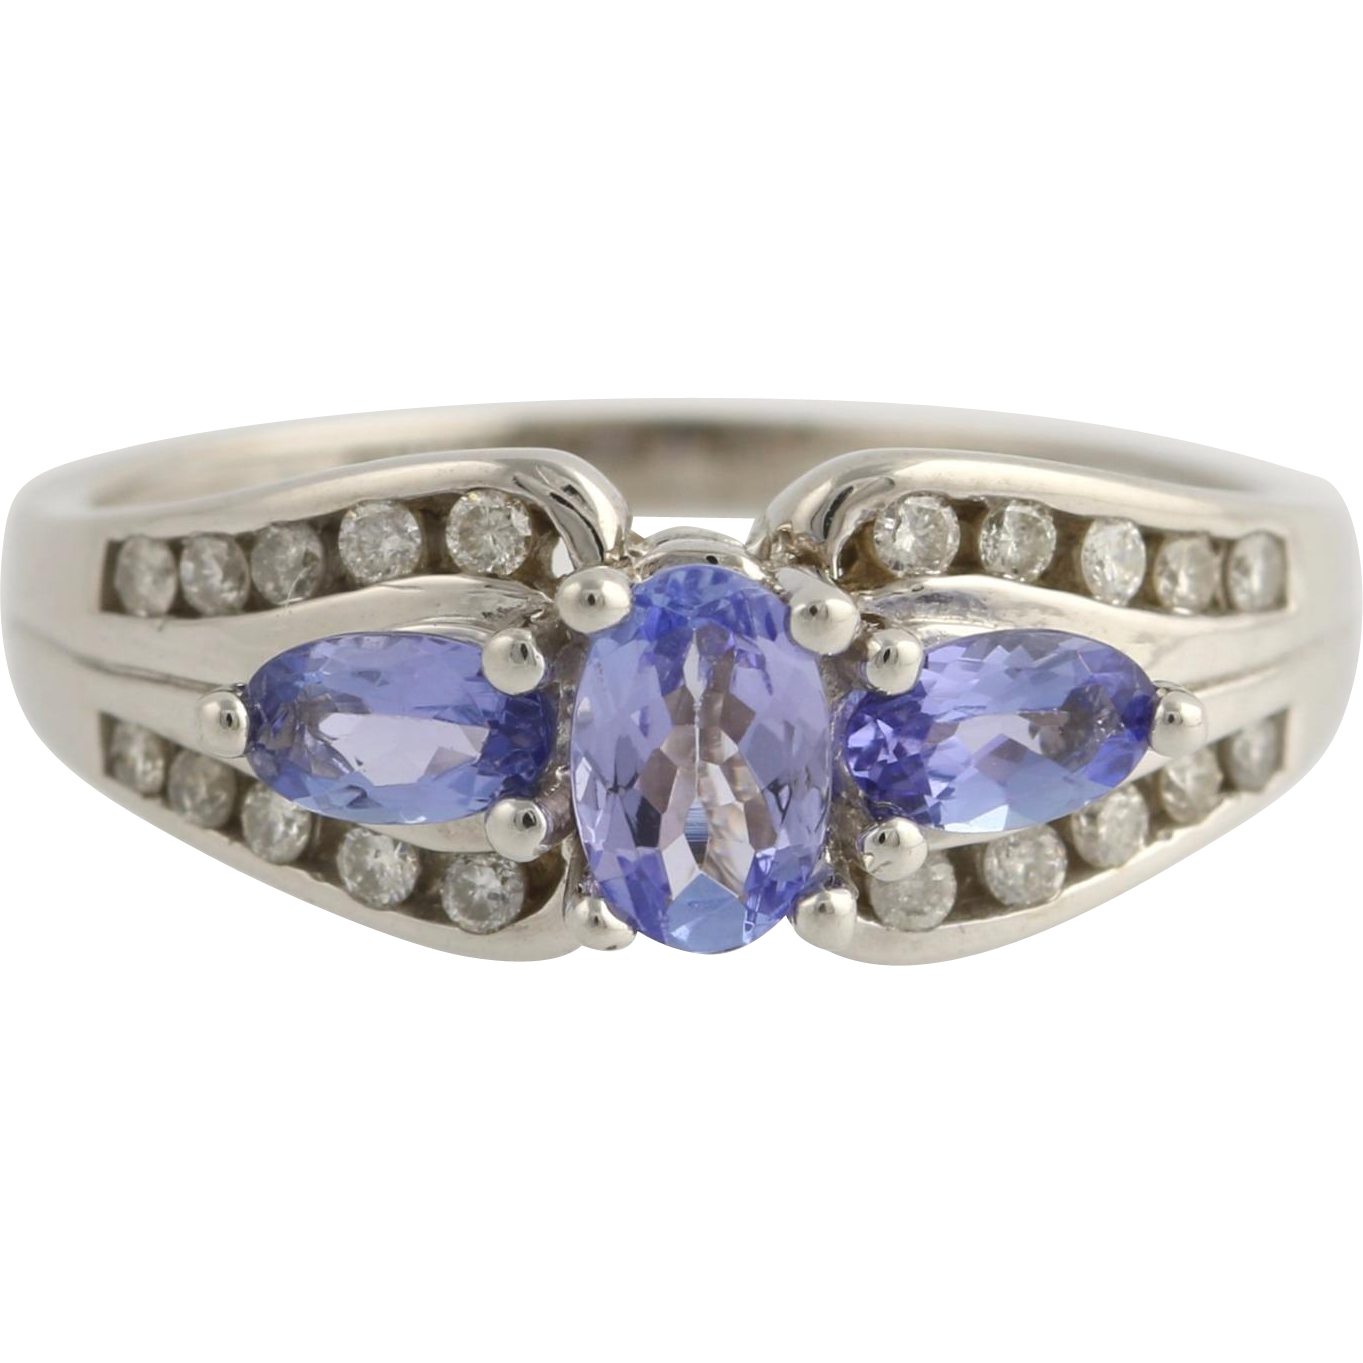 Tanzanite & Diamond Cocktail Ring - 14k White Gold Genuine Women's 1.13ctw